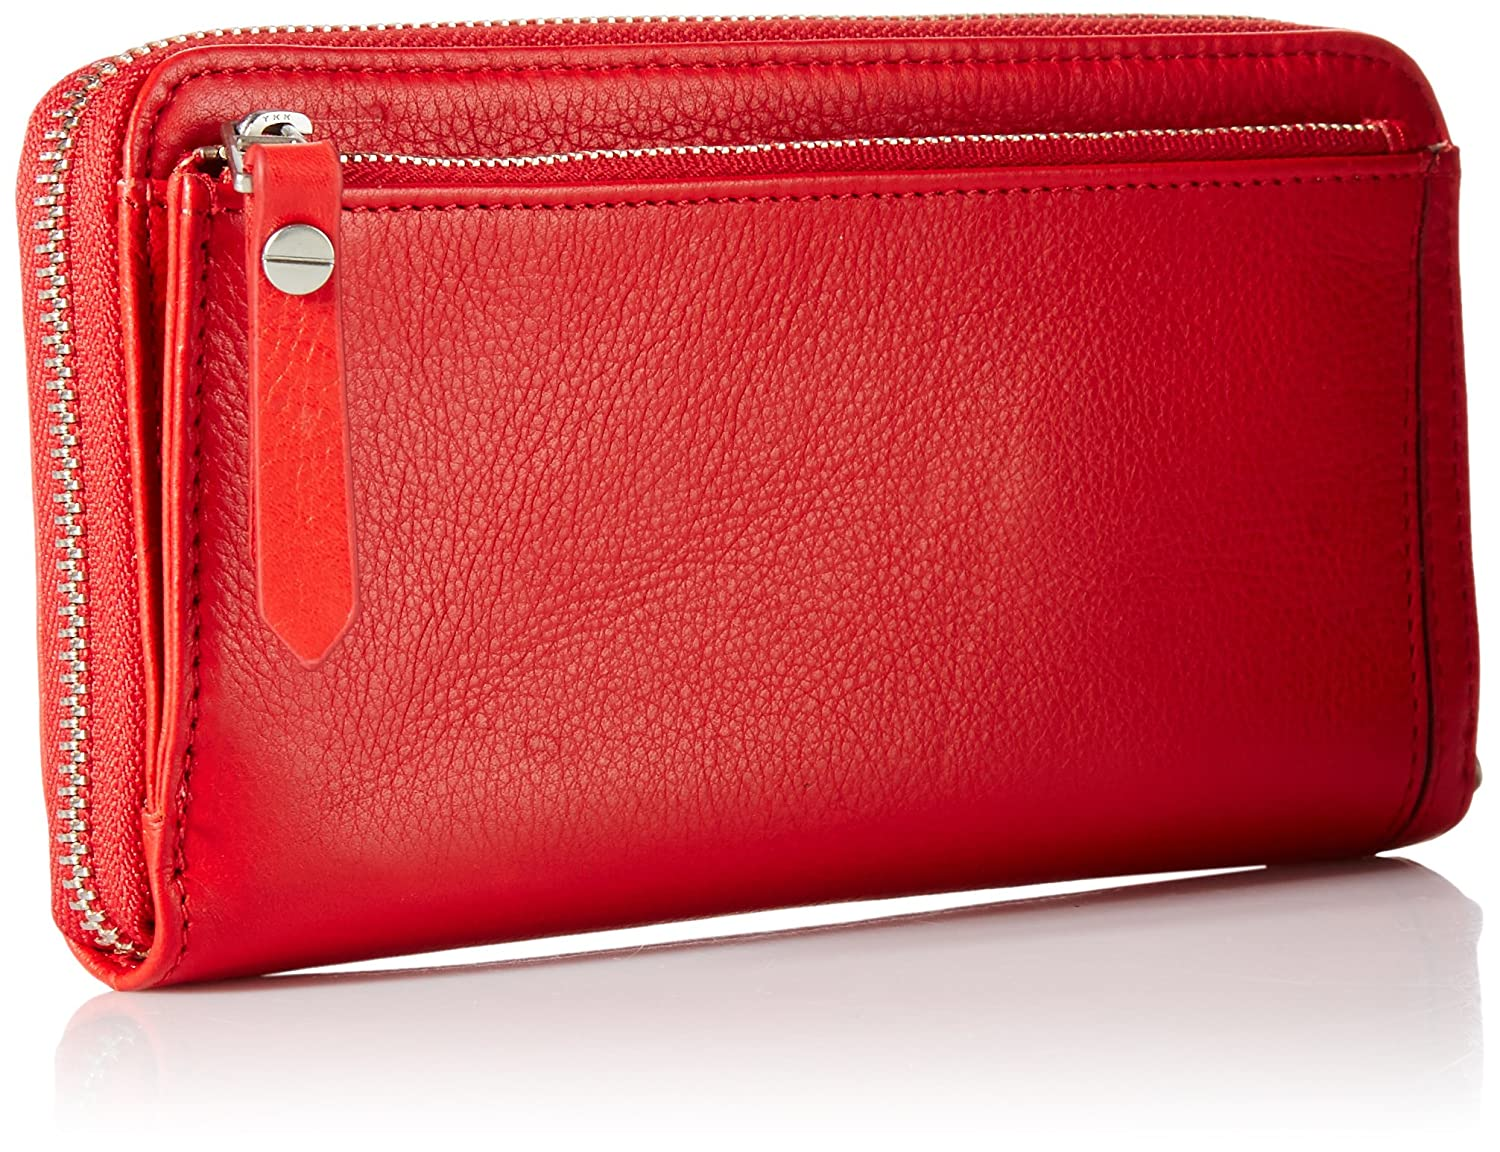 Amazoncom Fossil Dawson Zip Wallet Real Red Clothing Keely Tote Canvas